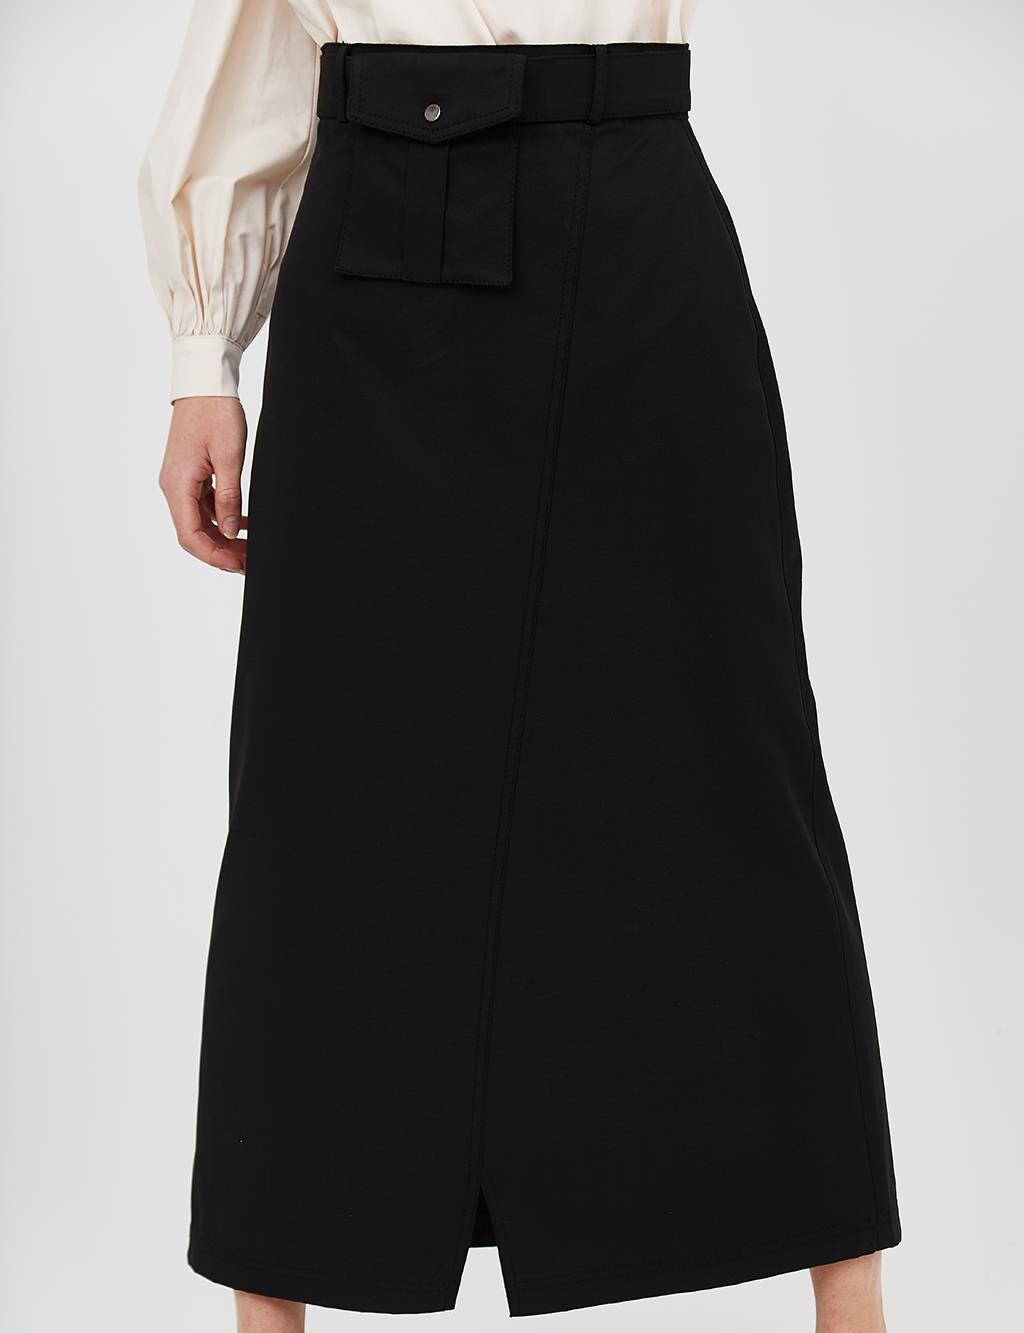 Kangaroo Pocket Cotton Skirt B21 12018 Black